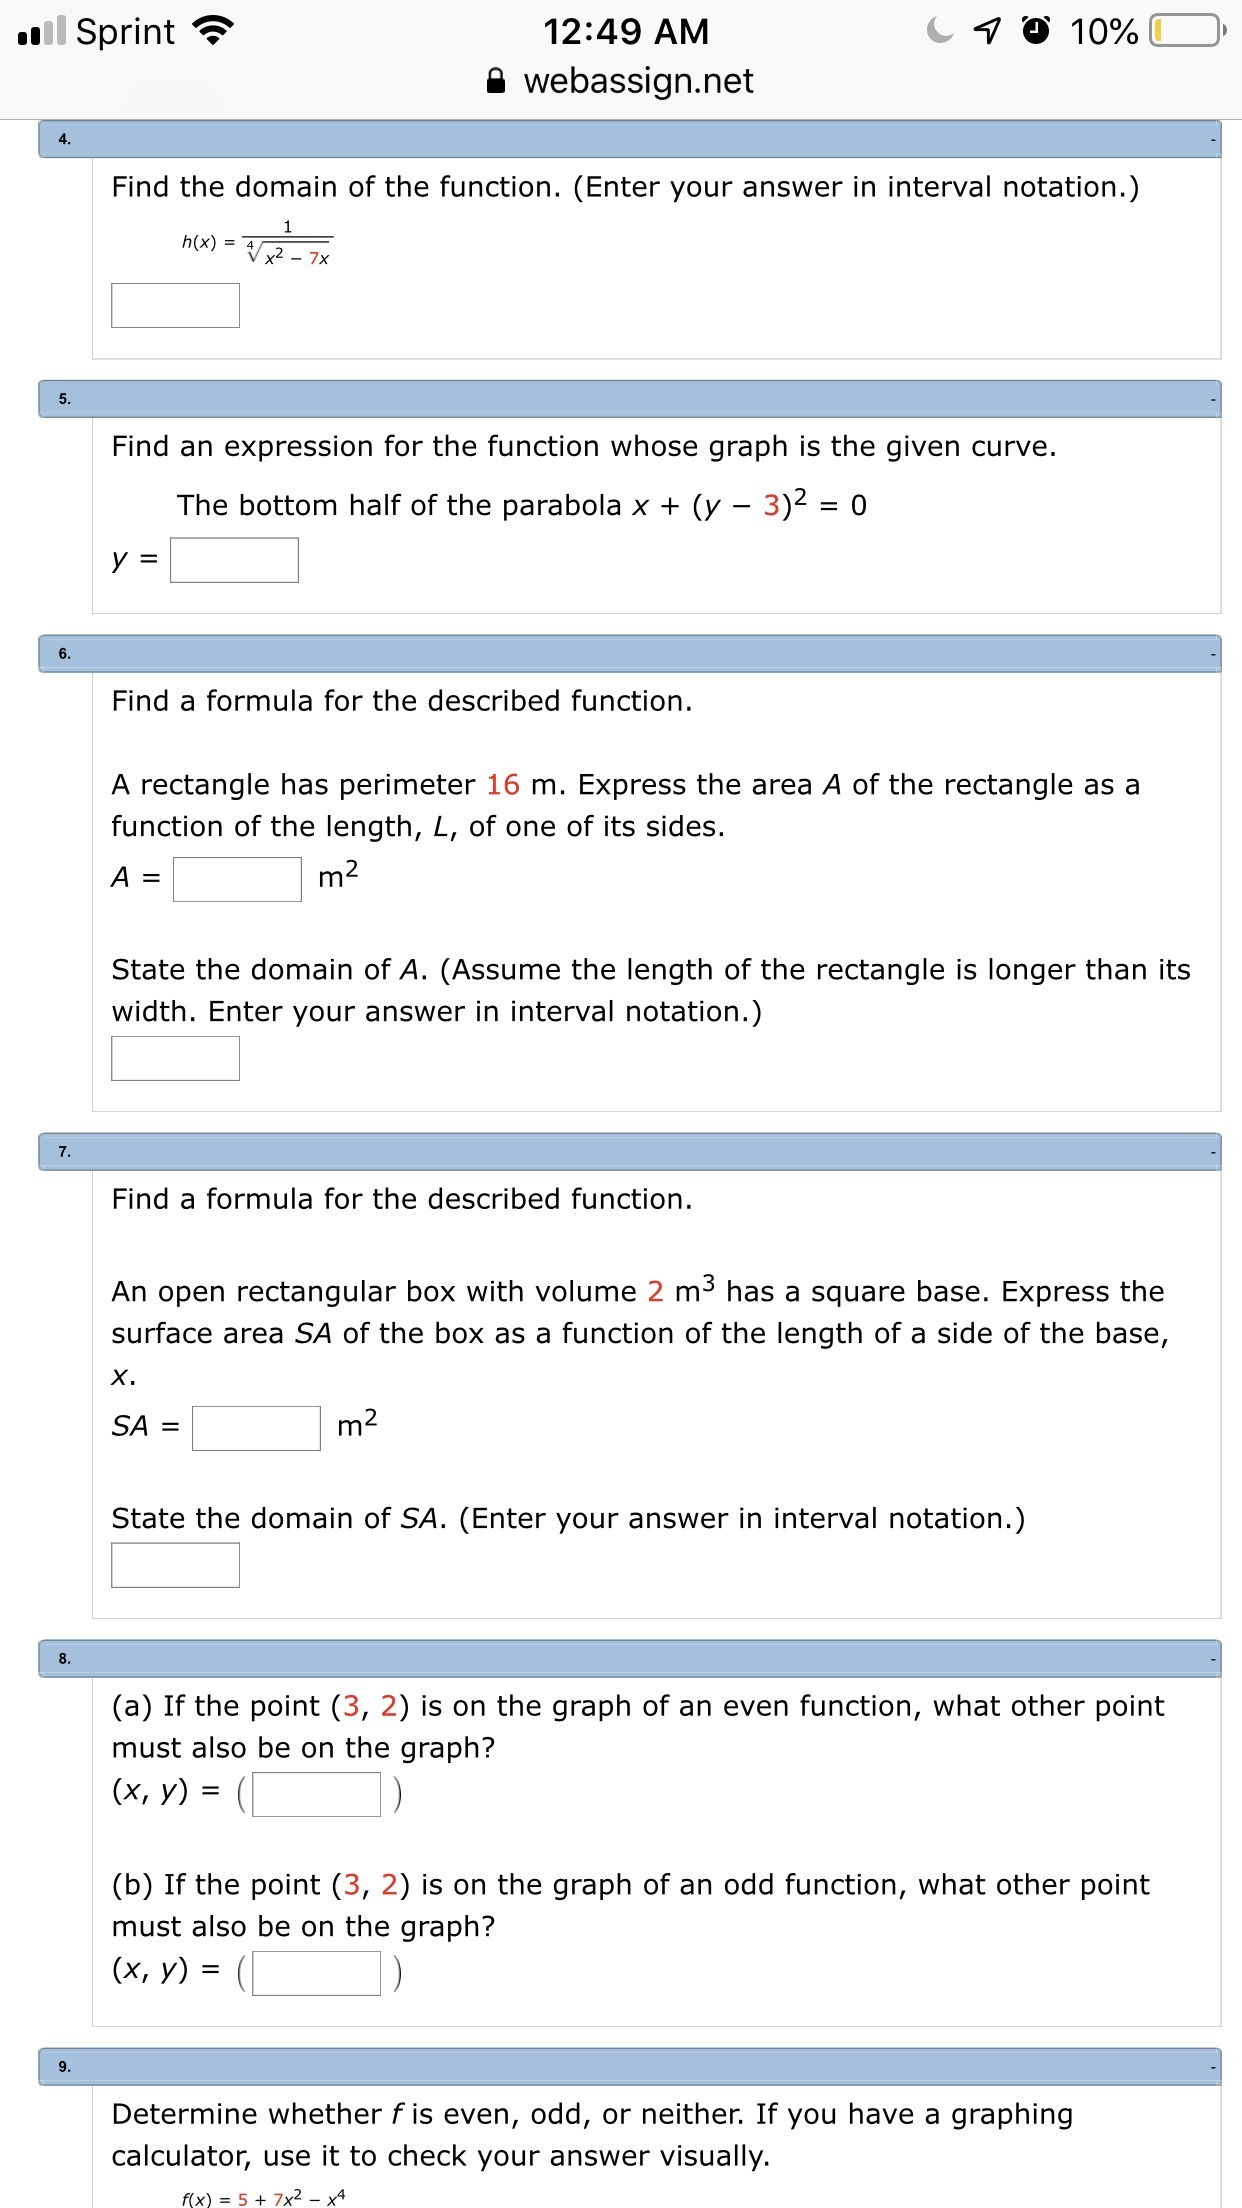 Please Help With The Questions In The Image Brainly Com